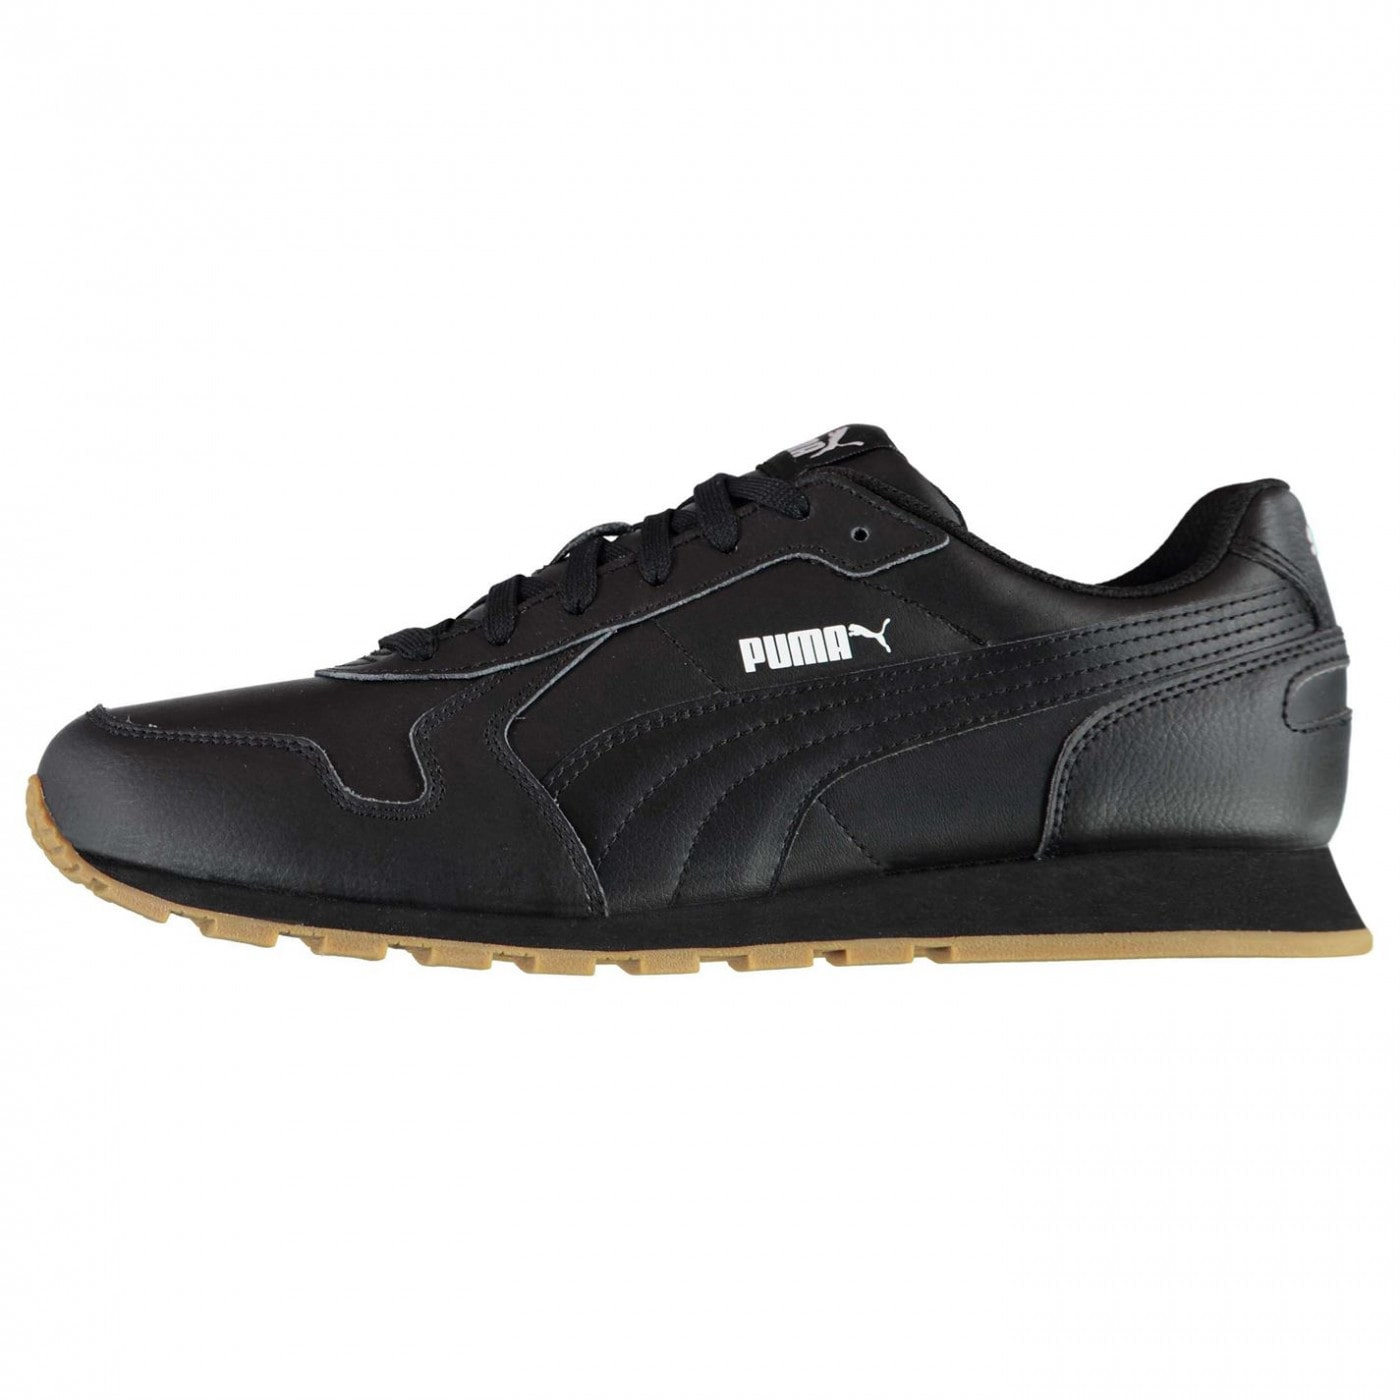 Puma ST Run Leather Trainers